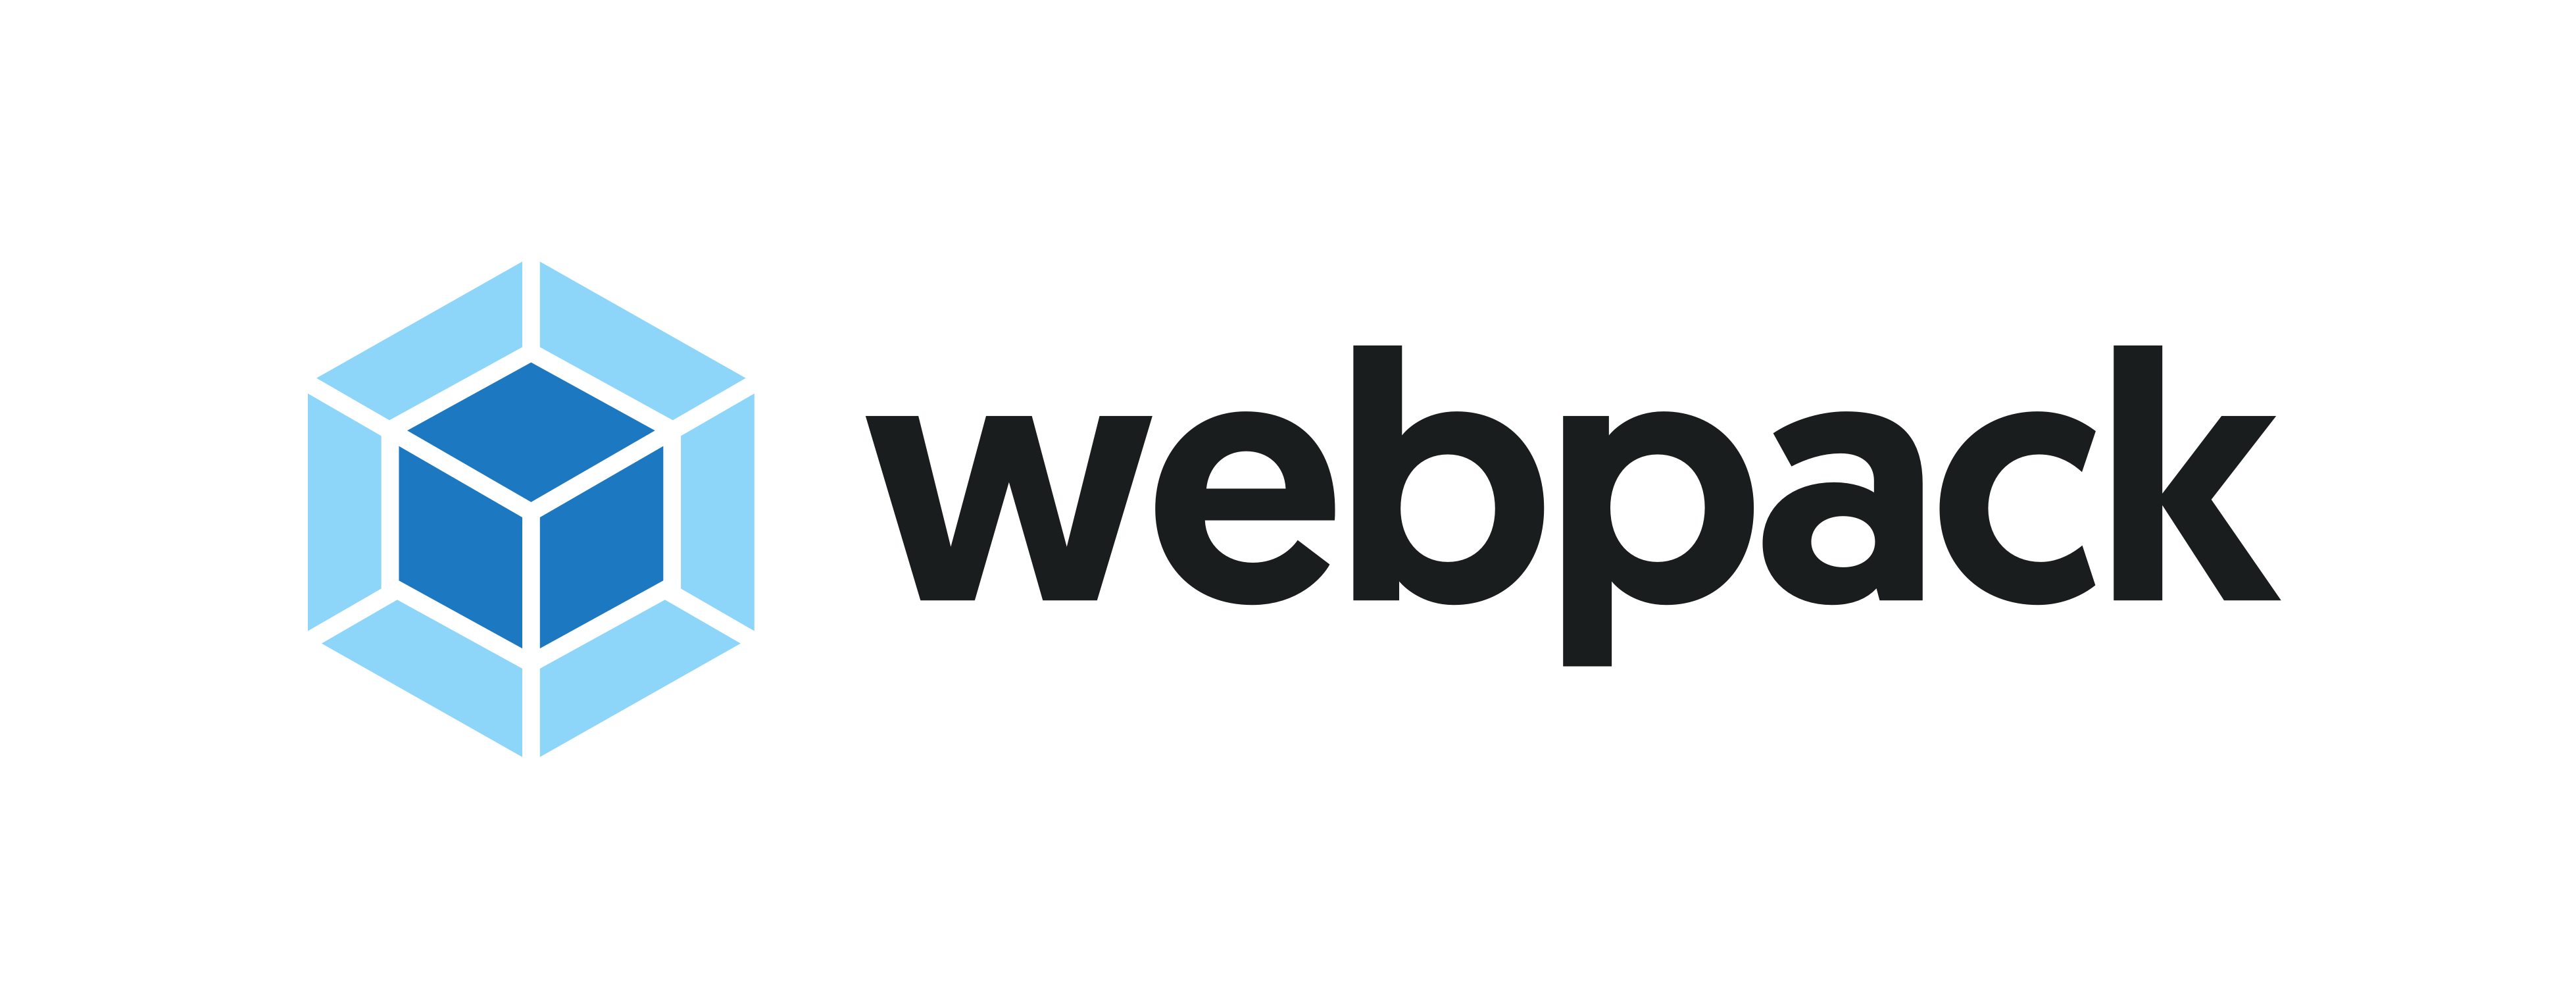 webpack logo default with proper spacing on light background